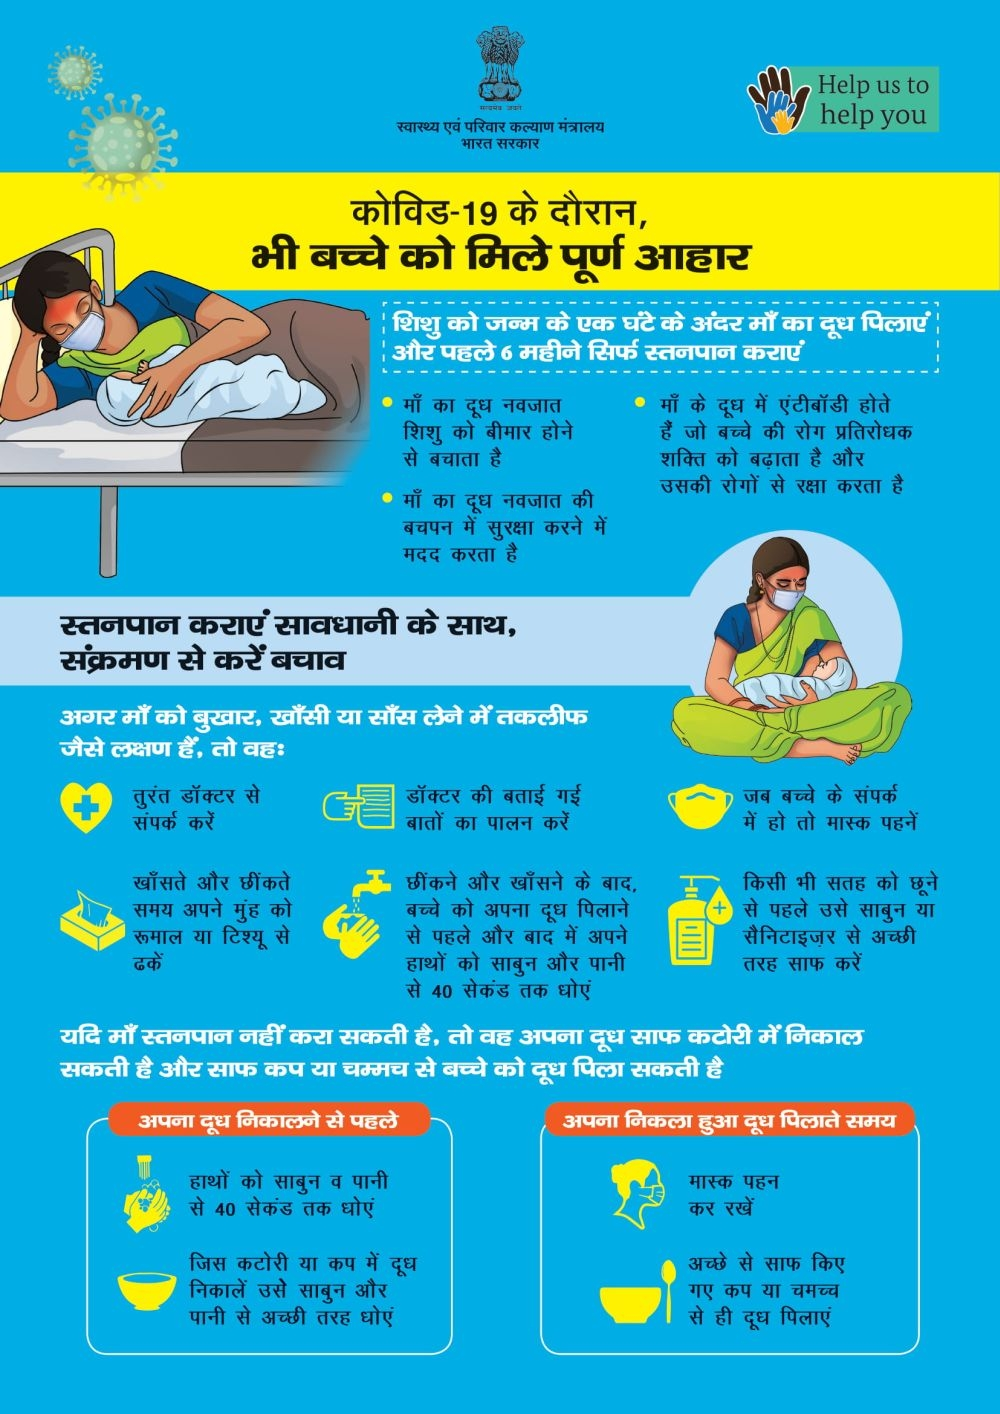 <p>UNICEF, Jharkhand displays posters appealing to provide nutritious food to children during COVID-19 pandemic.</p>